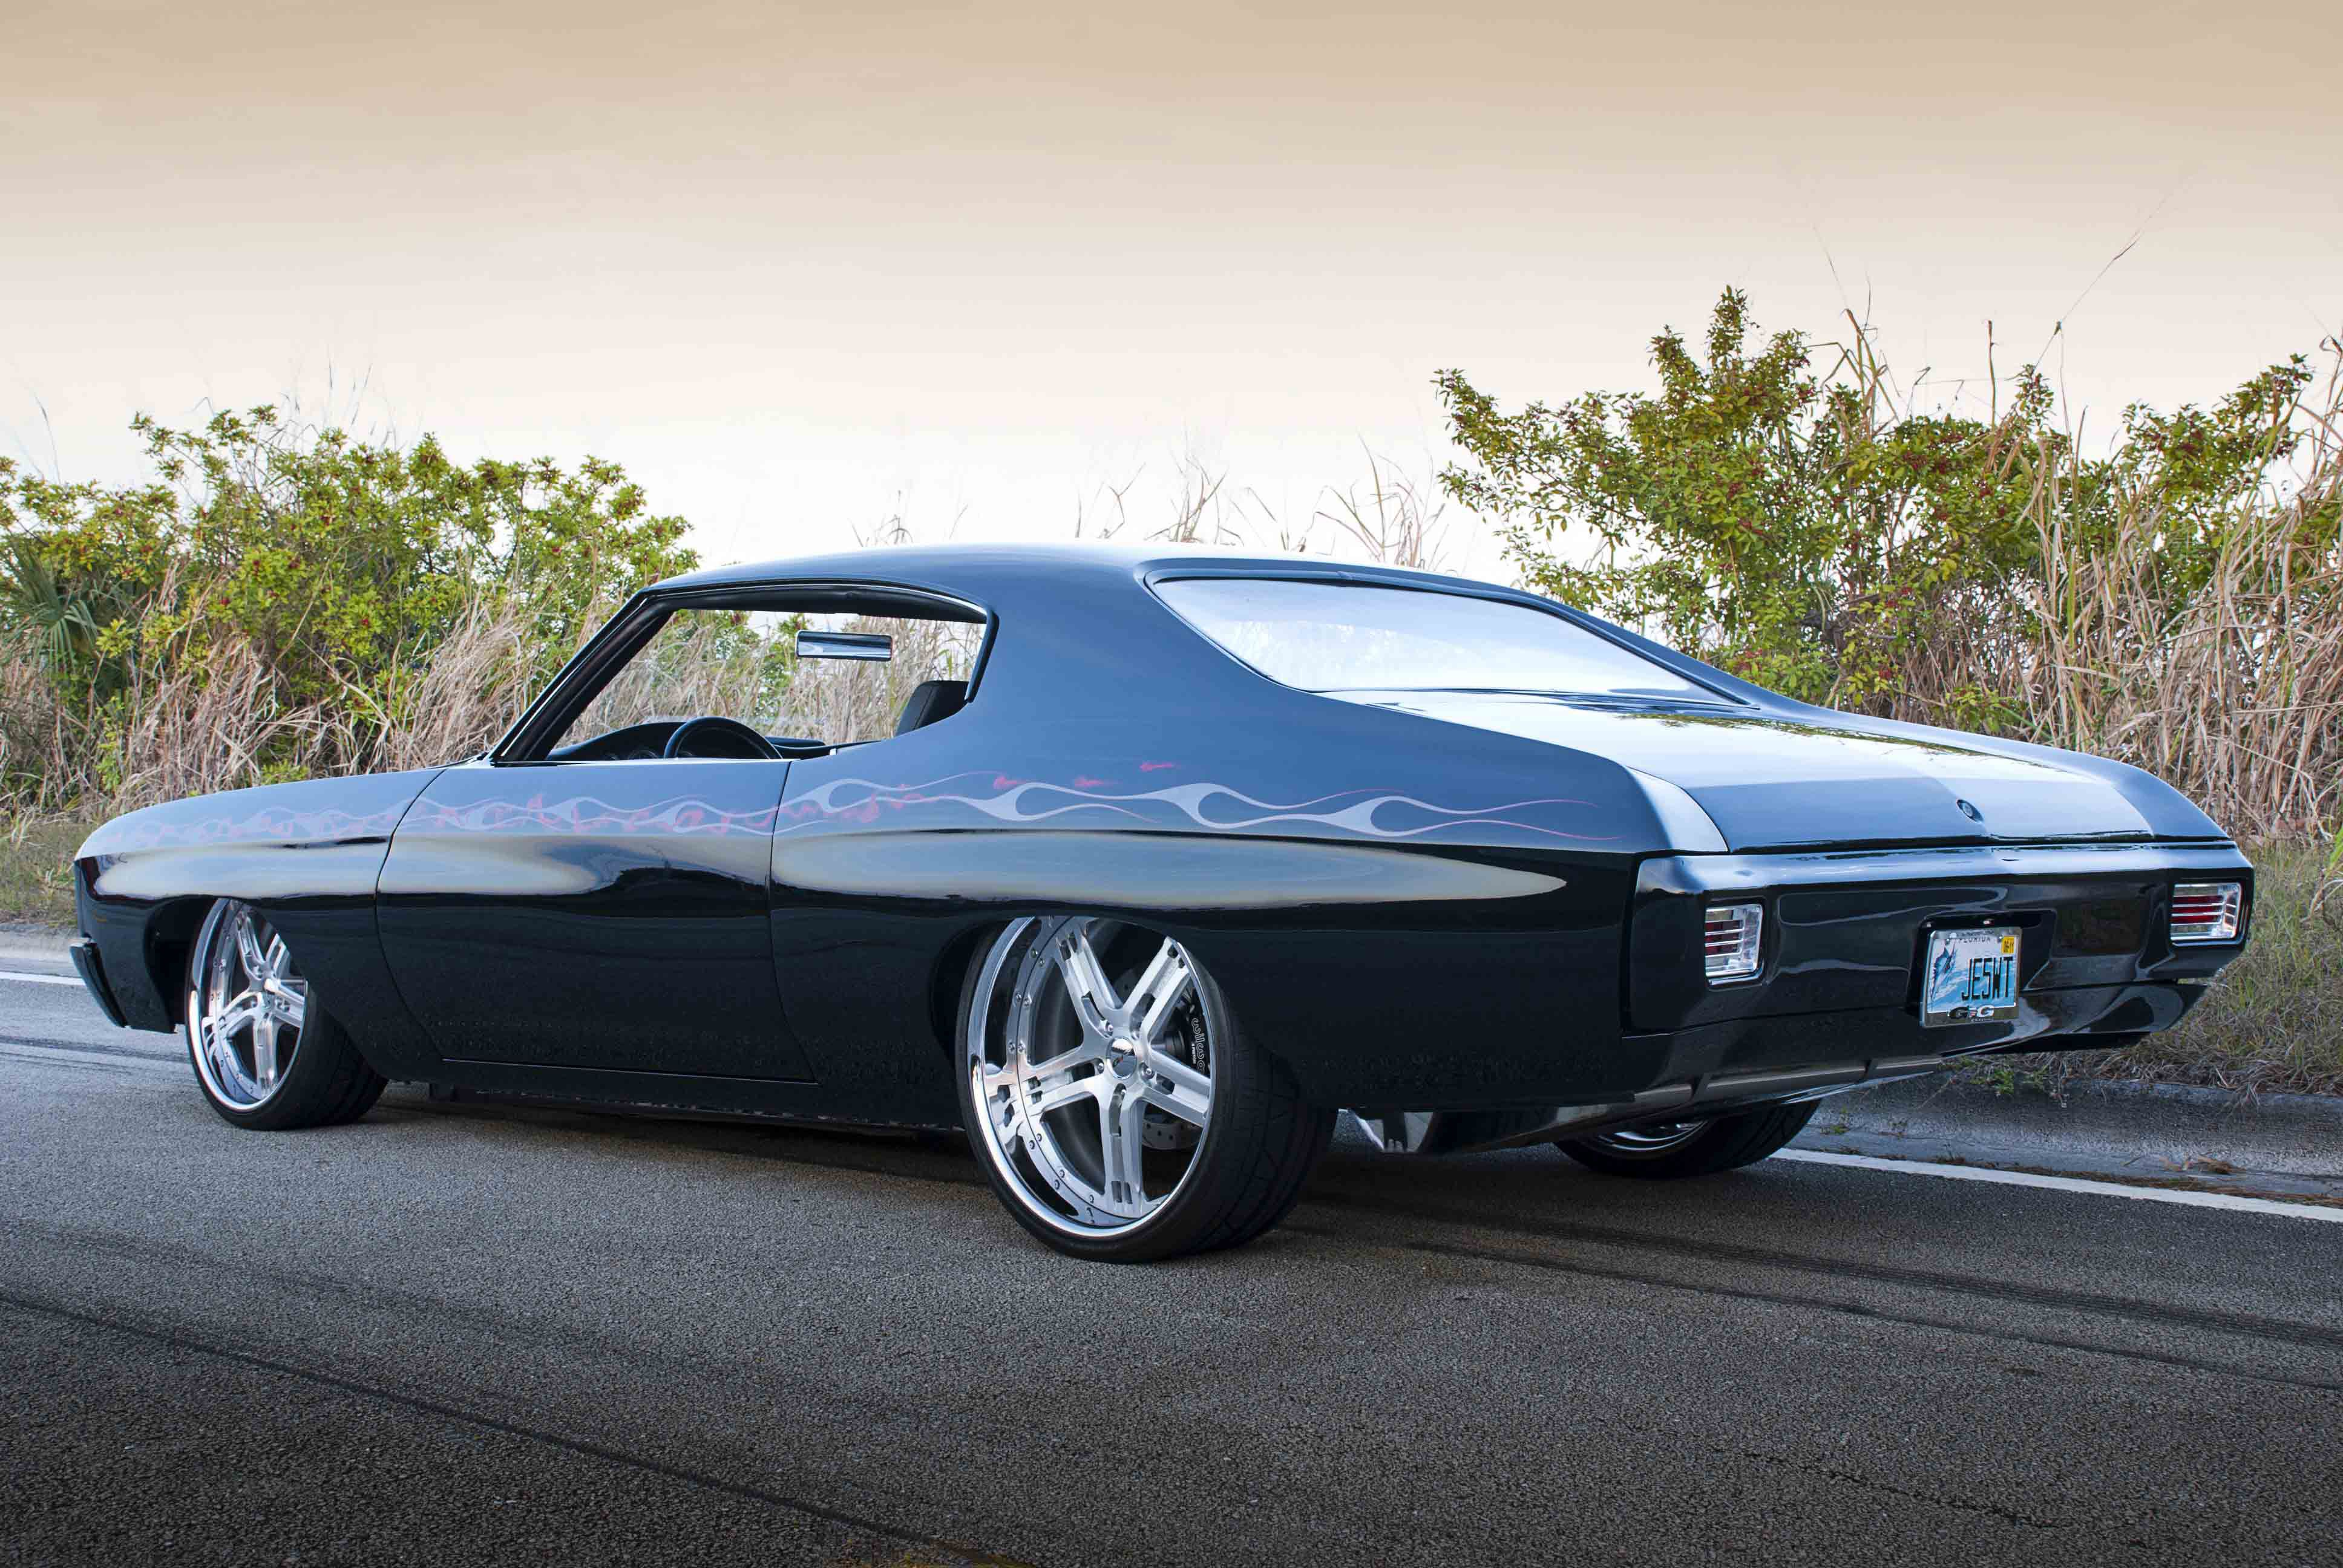 Feature: One Fast-Moving, Modernized \'70 Chevelle